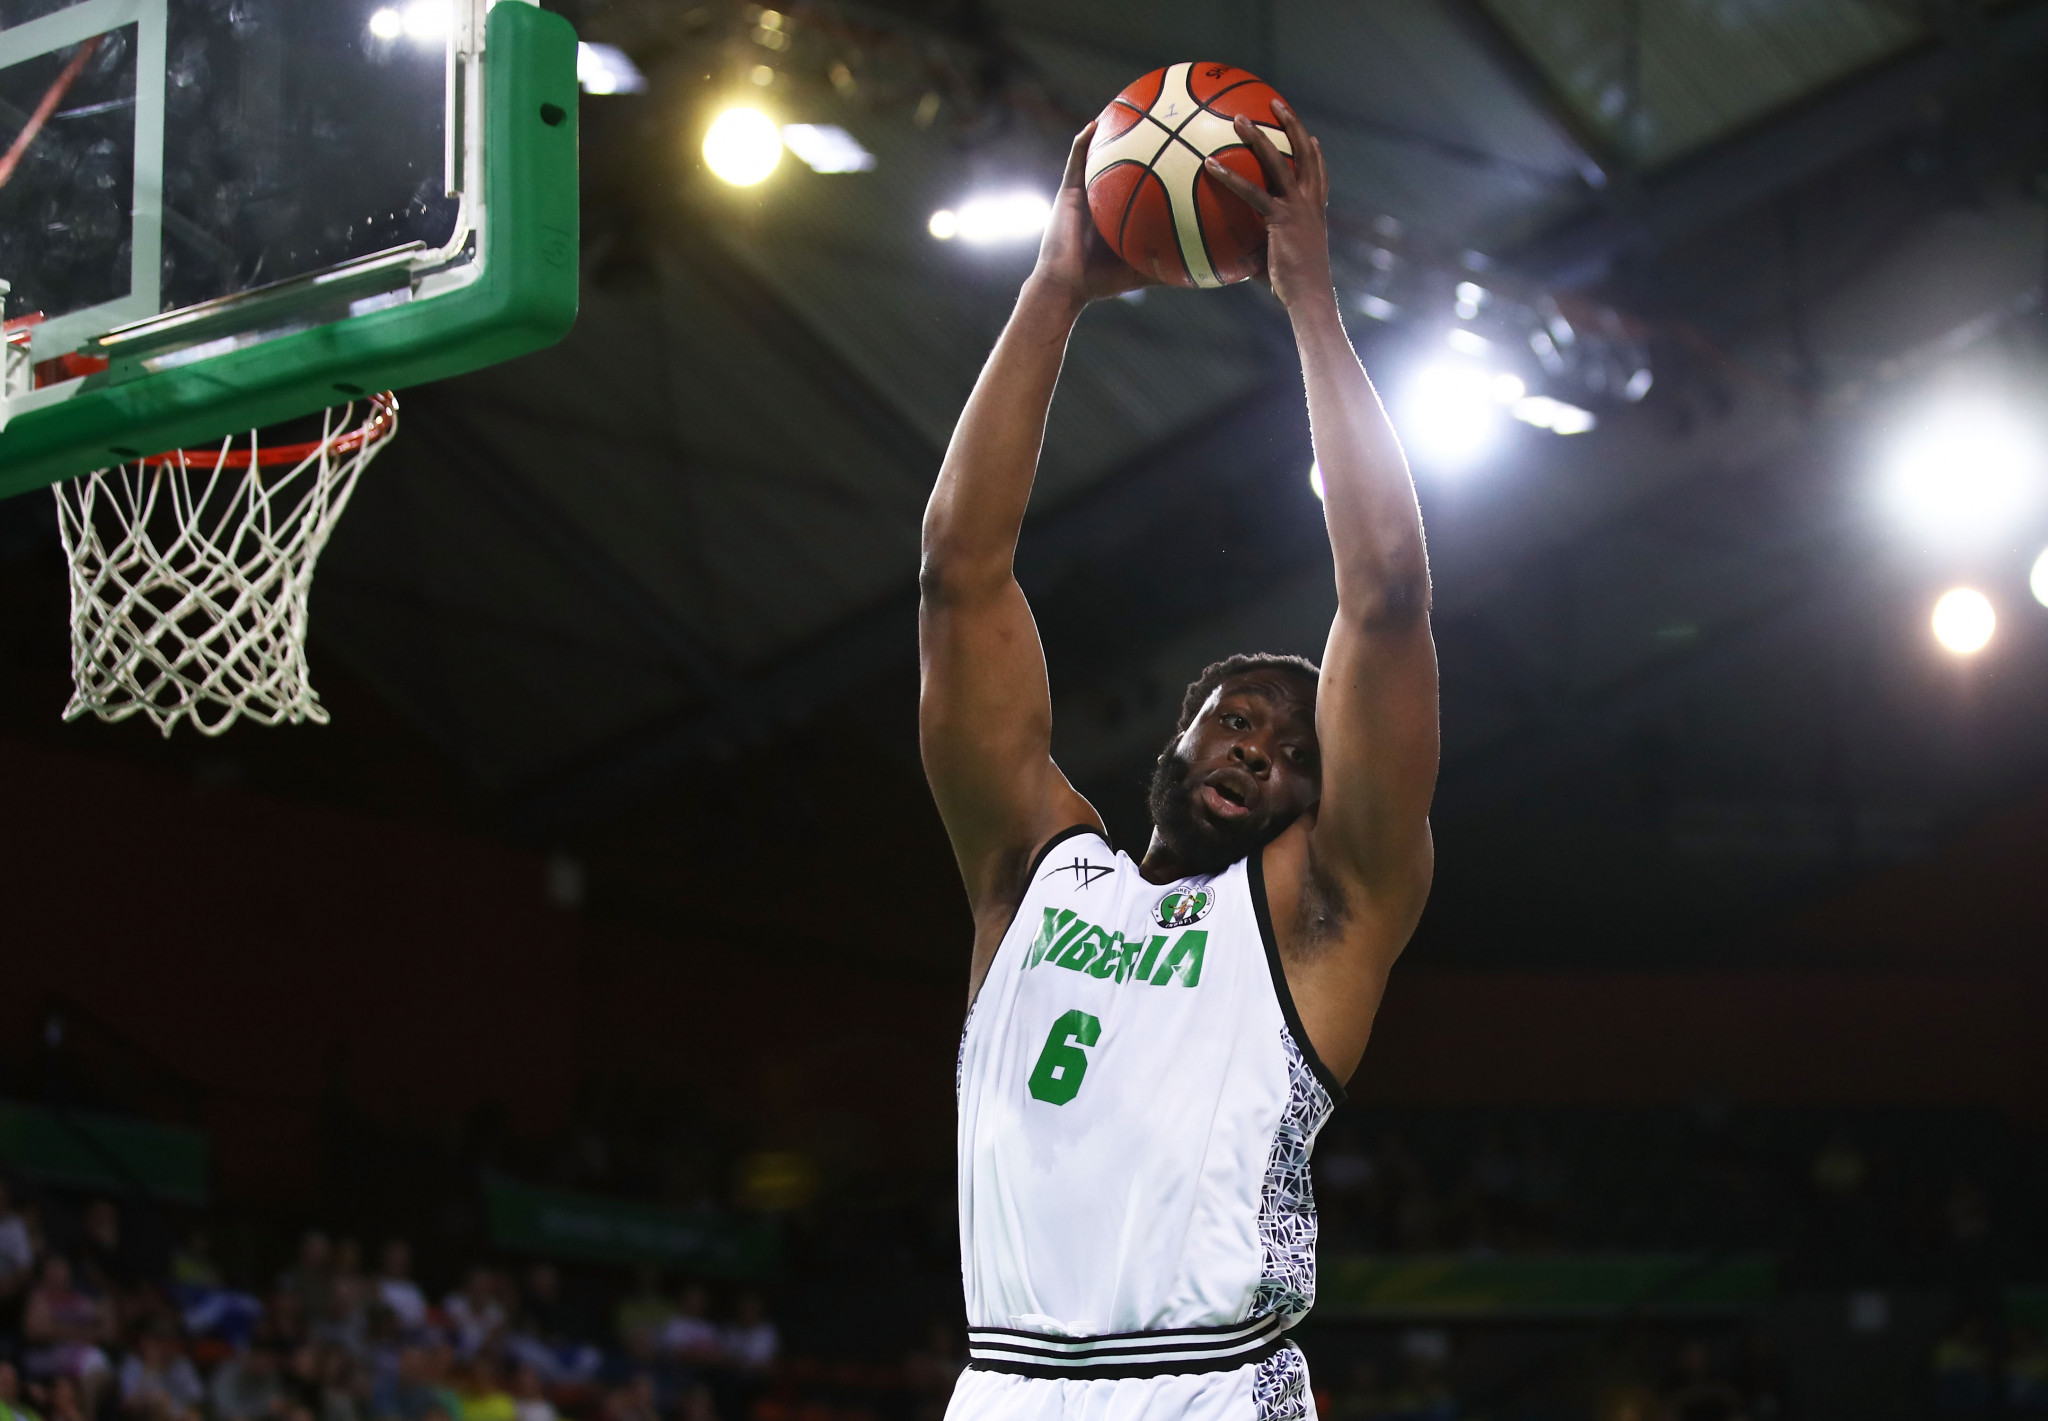 Nigeria qualified for the FIBA World Cup after beating Central African Republic 114-69 ©Getty Images